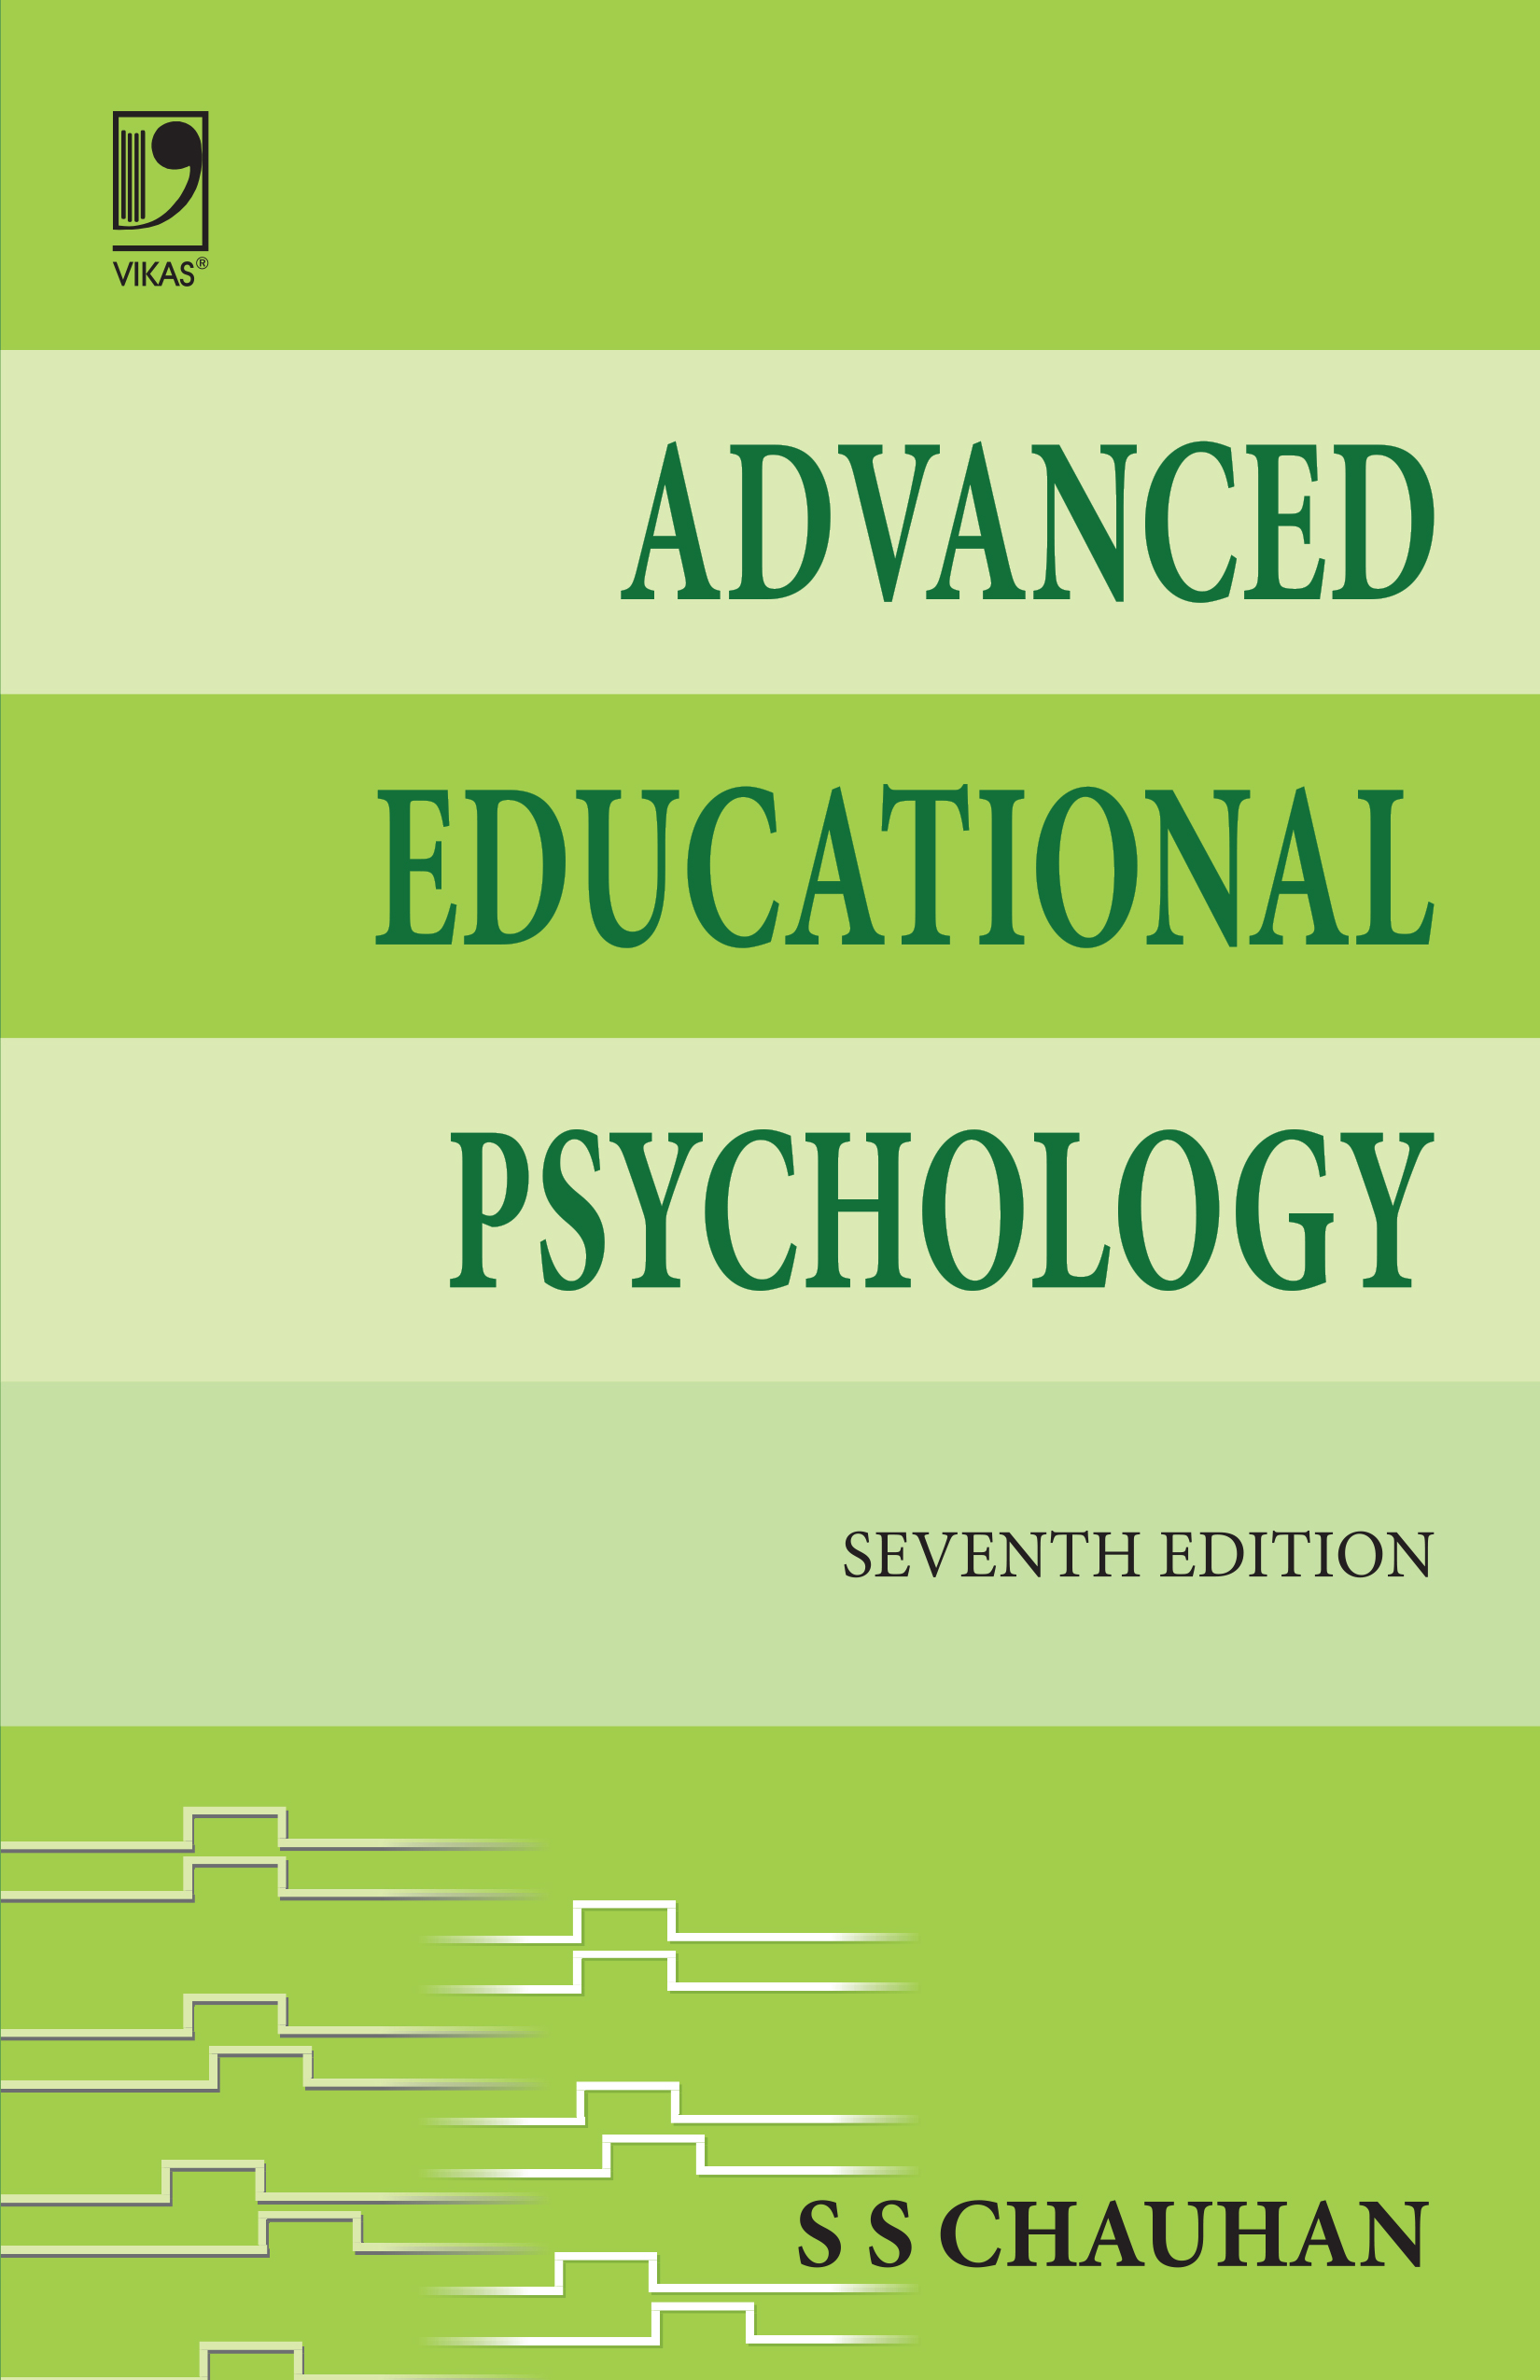 Advanced Educational Psychology, 7/e